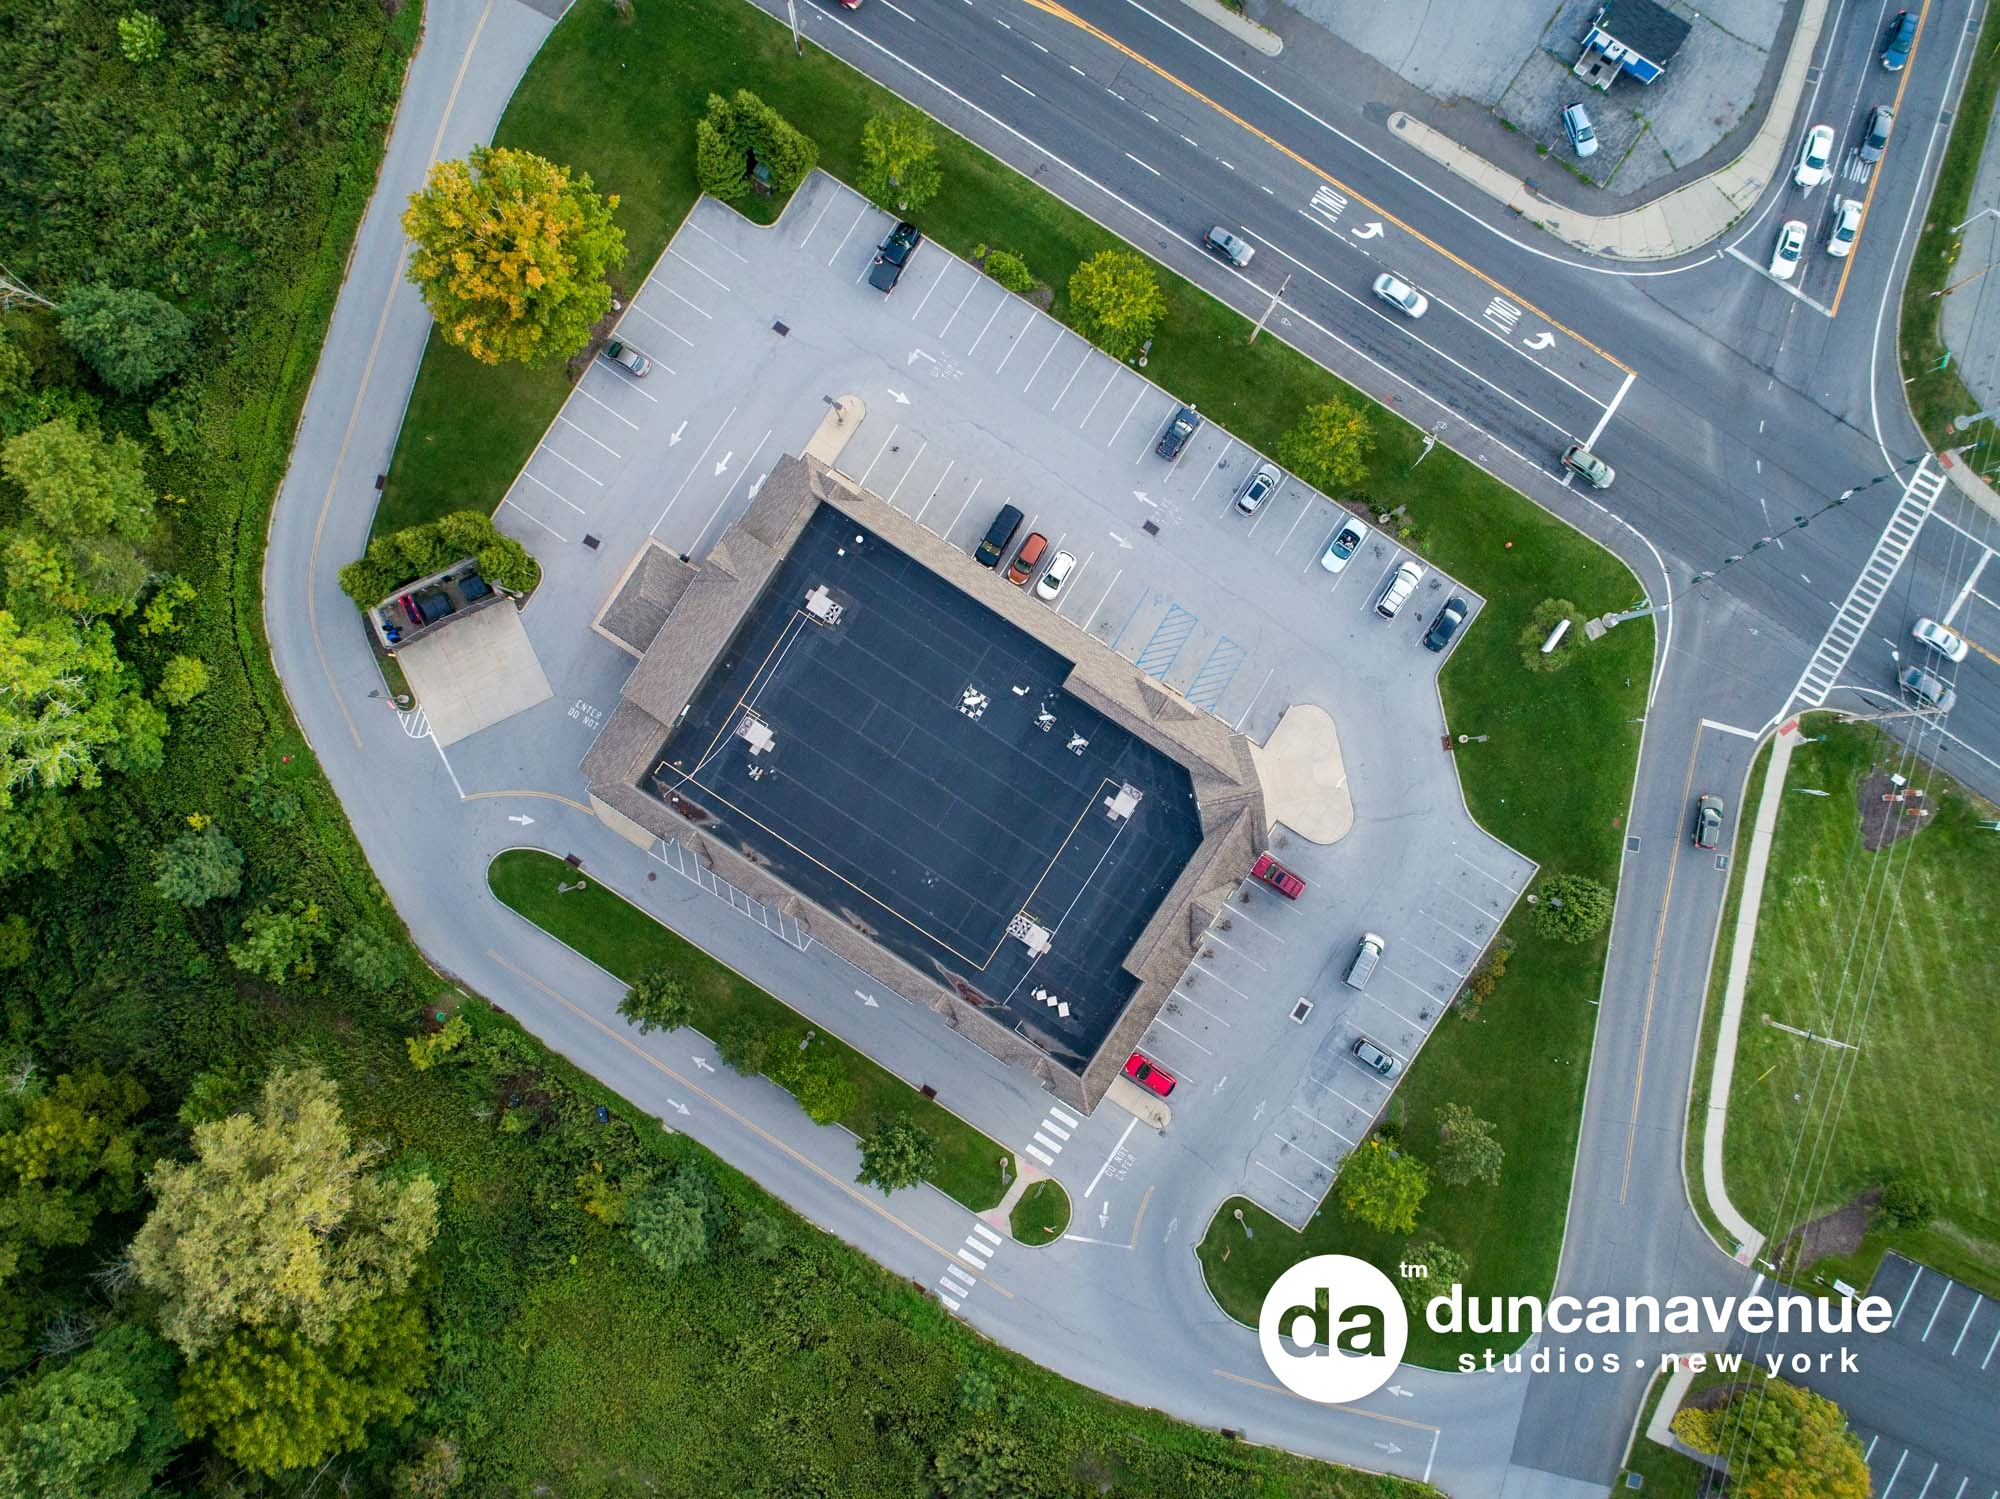 Walgreens, Highland, New York – Commercial Real Estate, Aerial, and Twilight, Dusk Photography by Duncan Avenue Studios – Hudson Valley, Catskills, and Westchester, NY